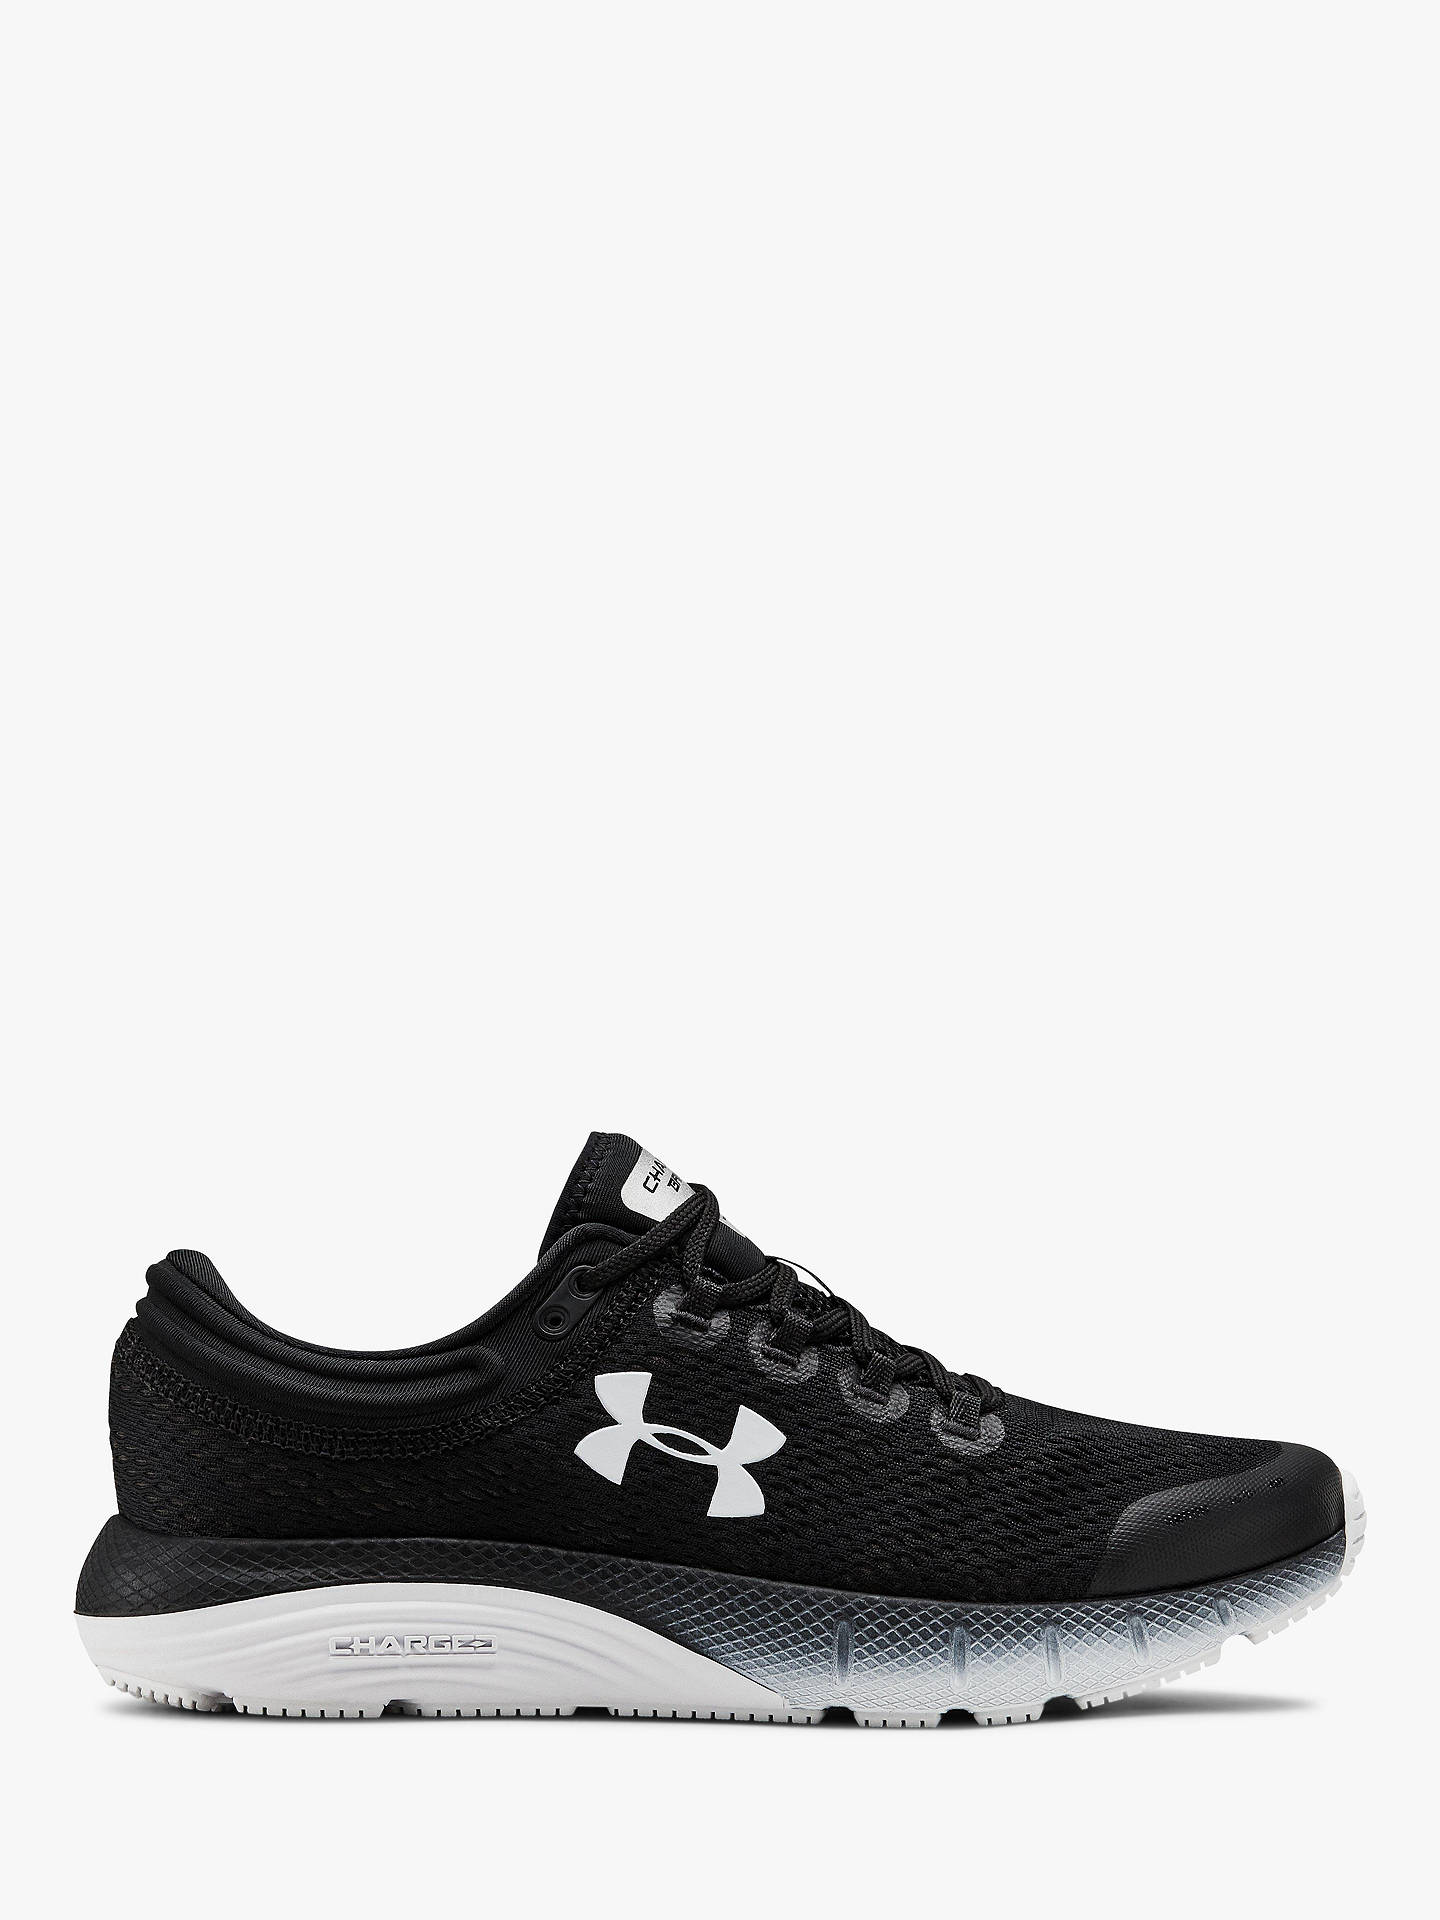 official photos 87191 12e8d Under Armour Charged Bandit 5 Women's Running Shoes, Black/White